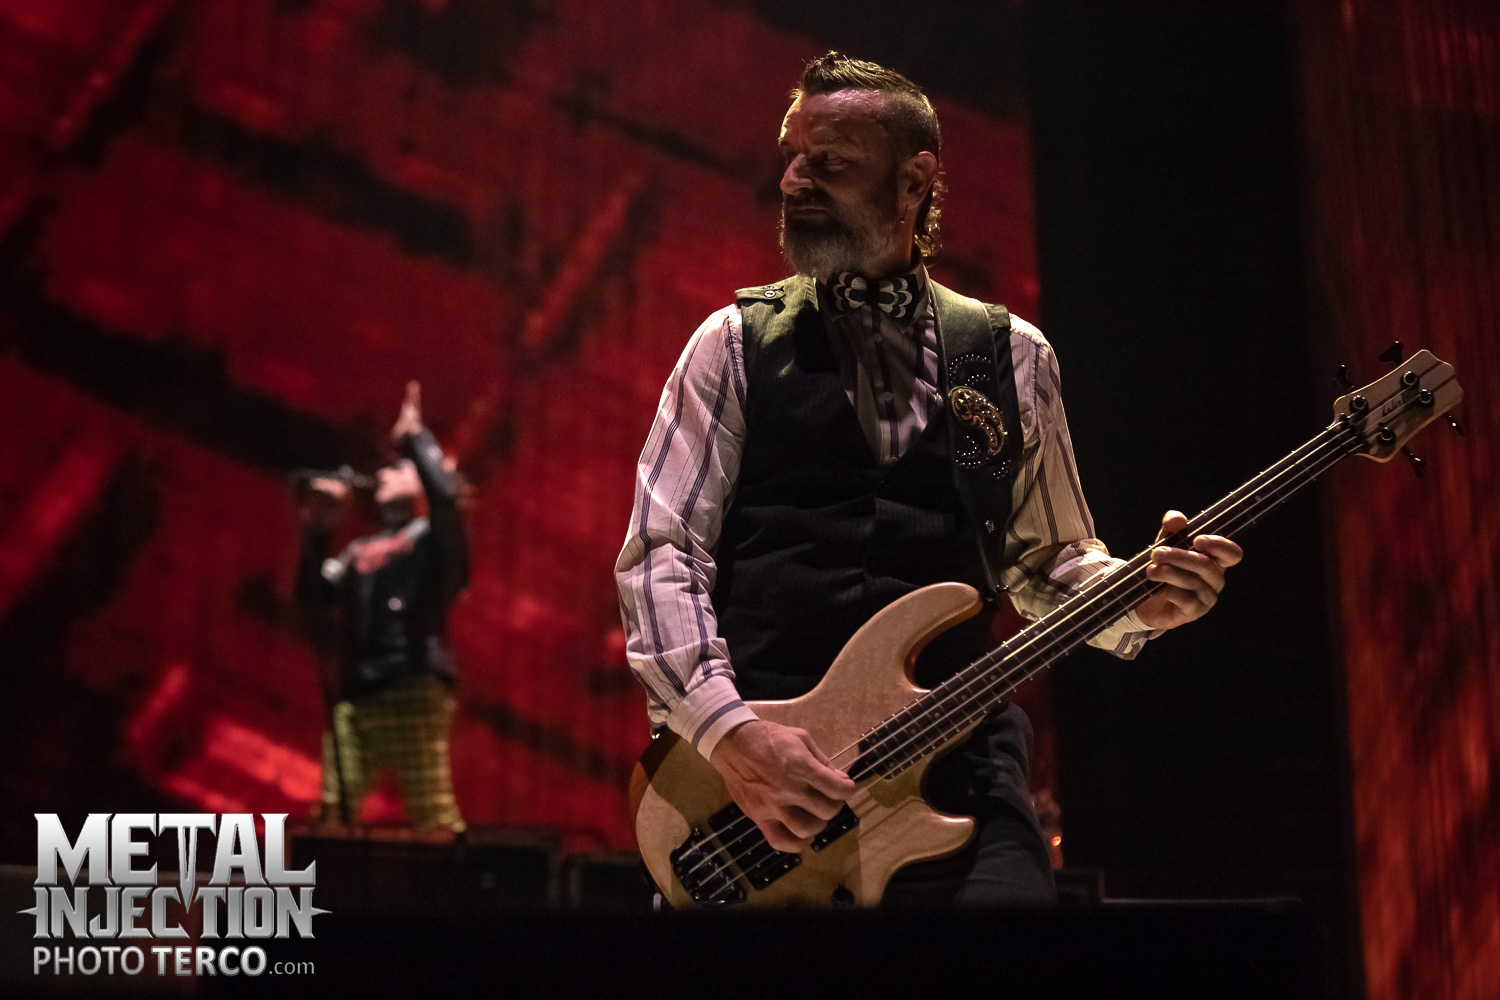 TOOL Bassist Justin Chancellor Gives Struggling Fan Free Ticket To Australian Show